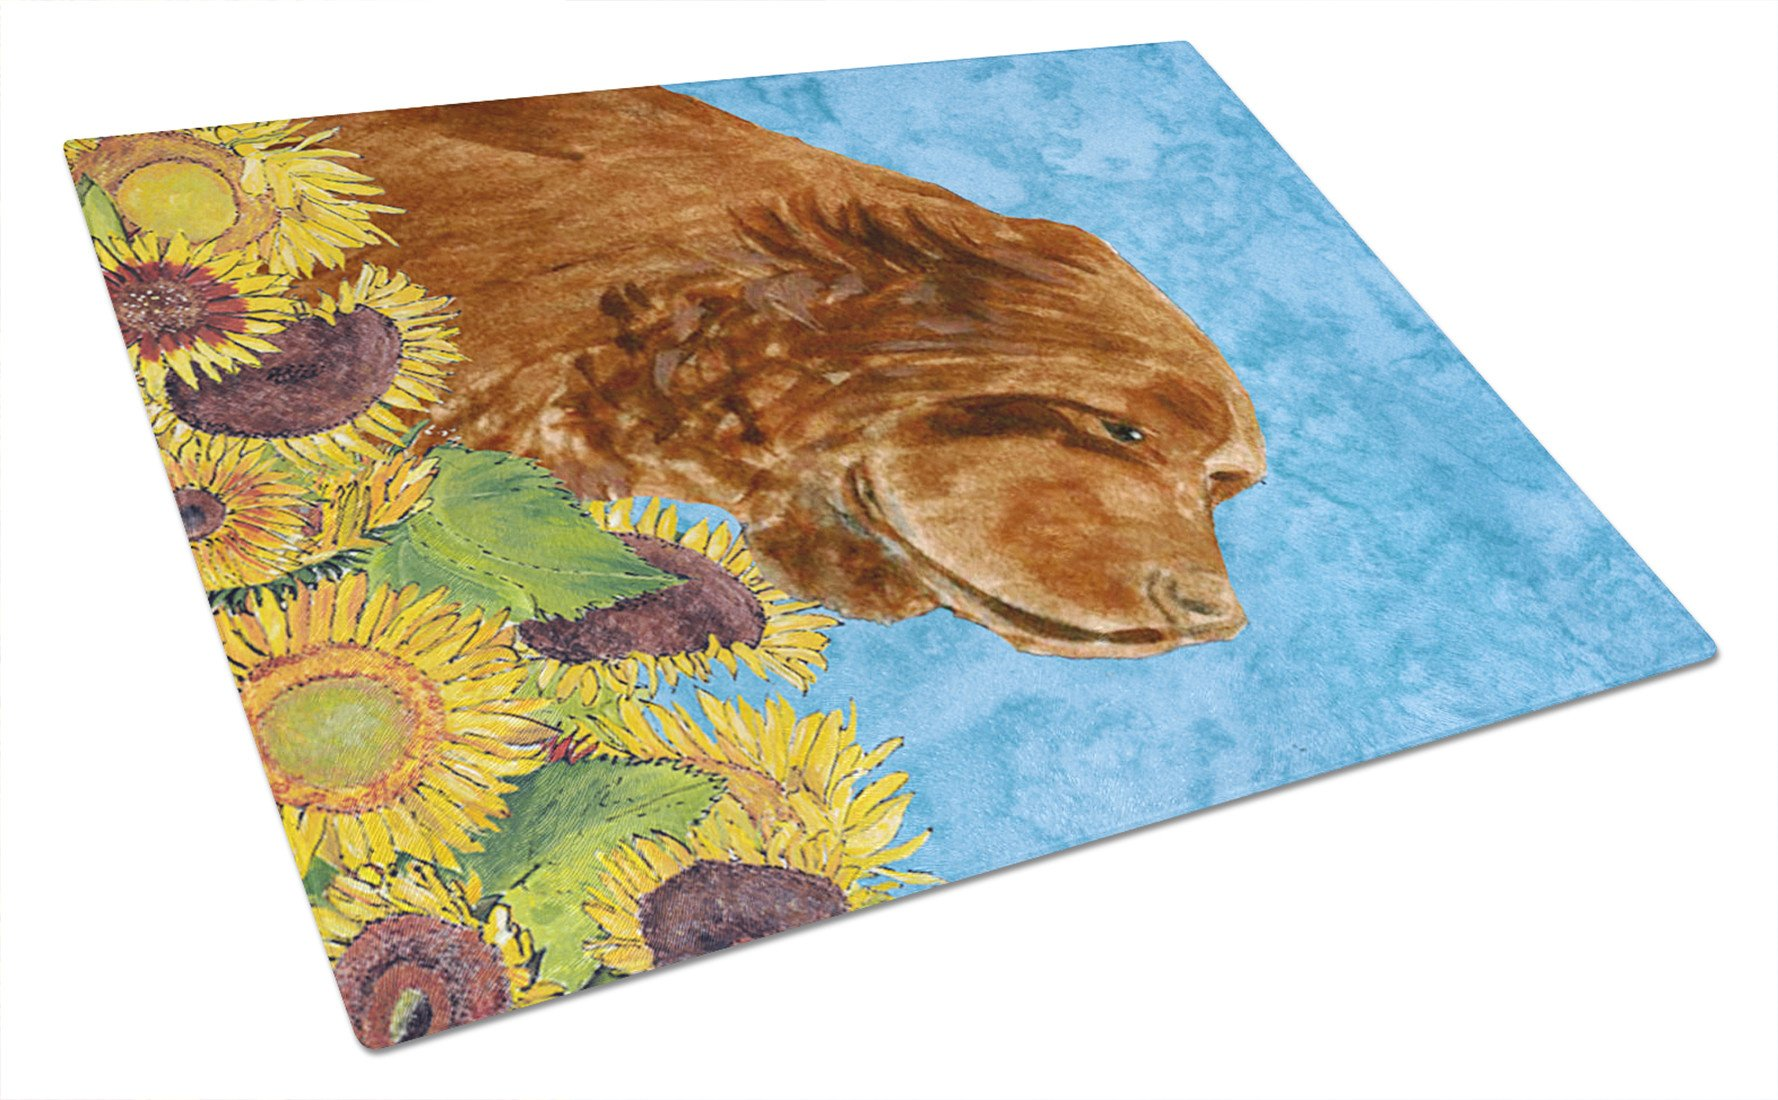 Sussex Spaniel Glass Cutting Board Large by Caroline's Treasures